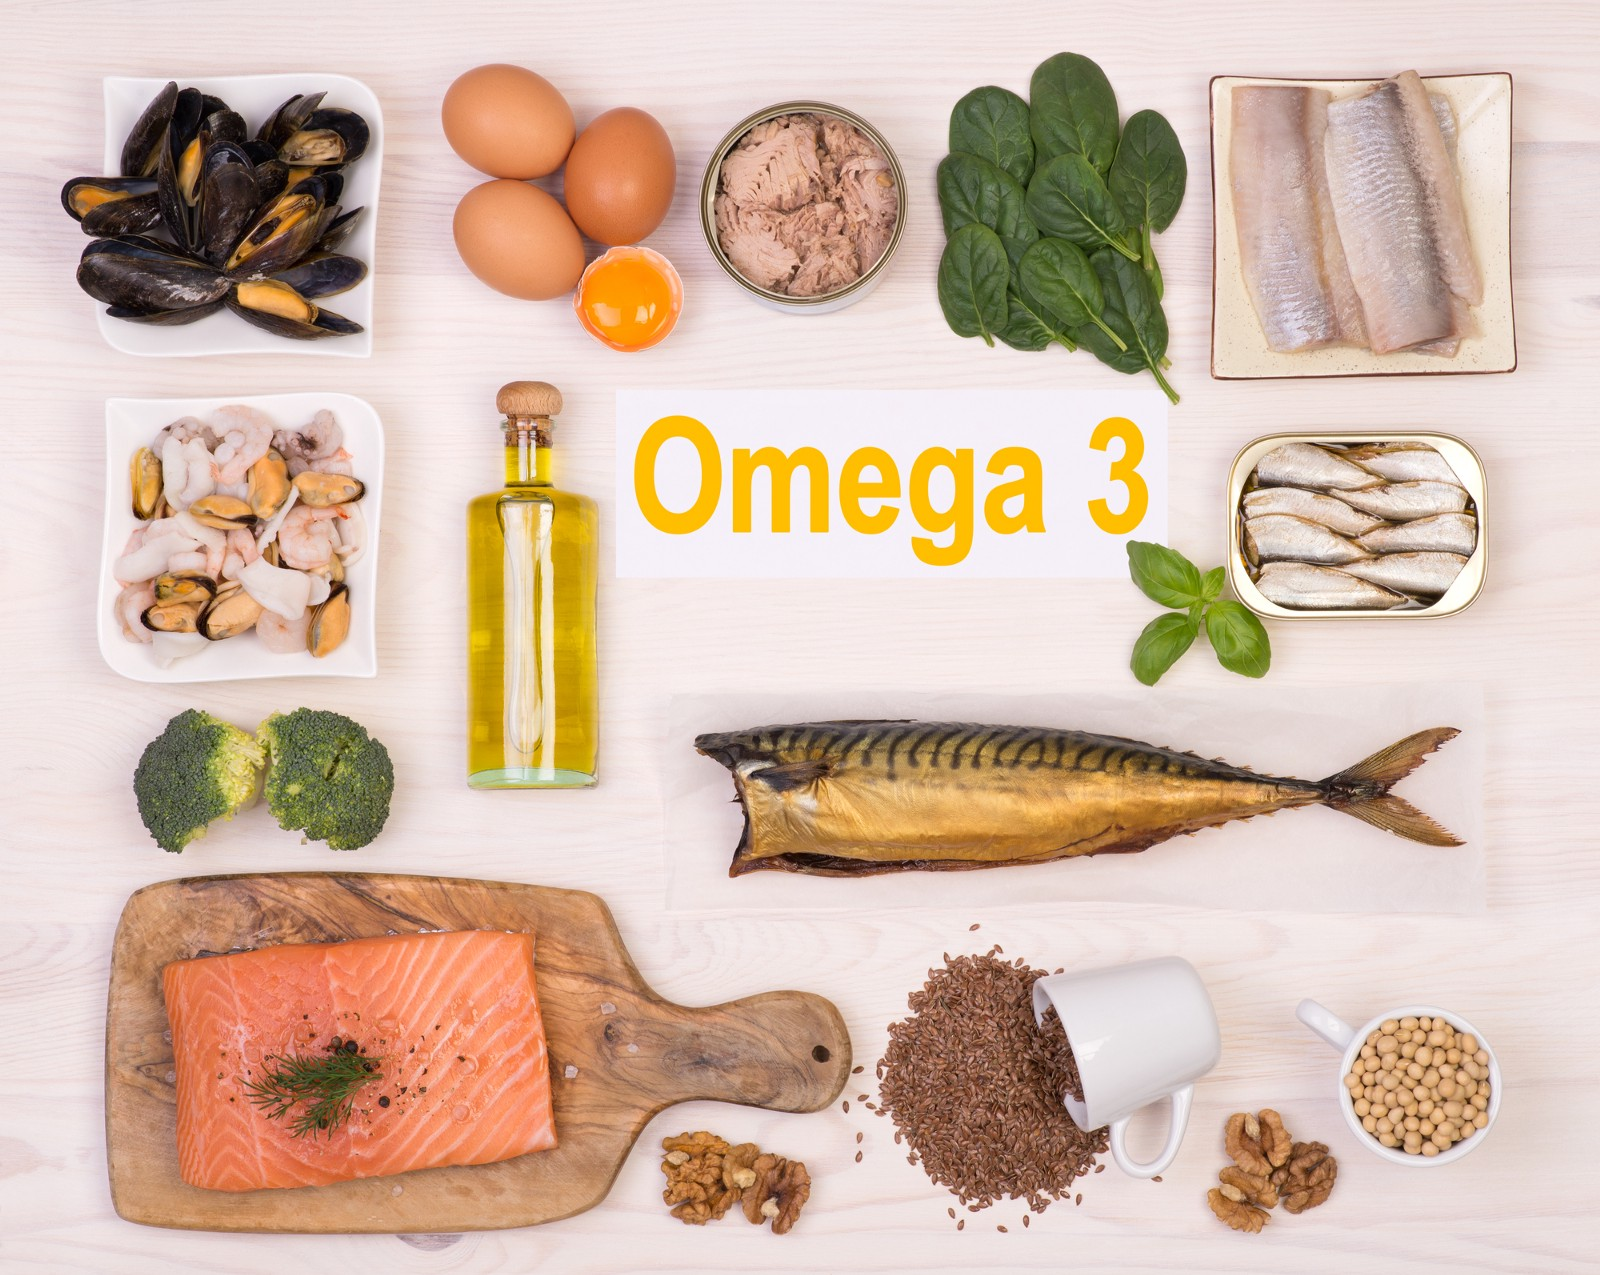 7 foods rich in omega-3 fatty acids — for help with adhd, autism